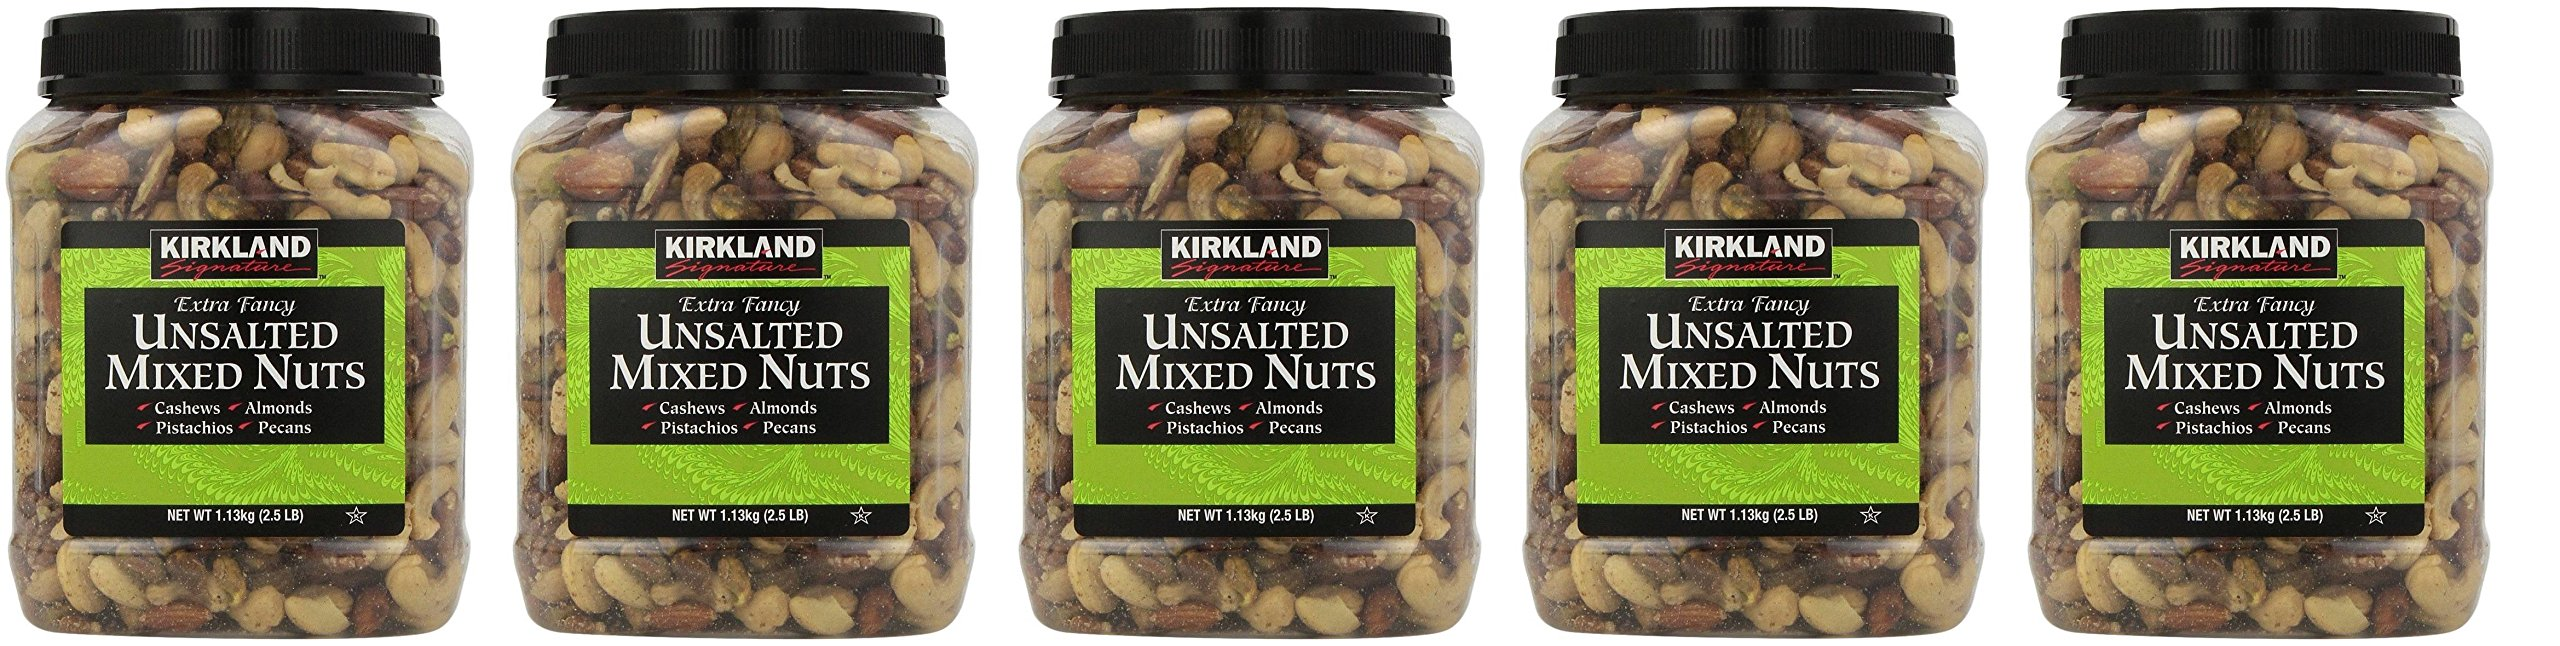 Kirkland Signature Extra Fancy Unsalted Mixed Nuts, 40 Ounces (5 Pack)